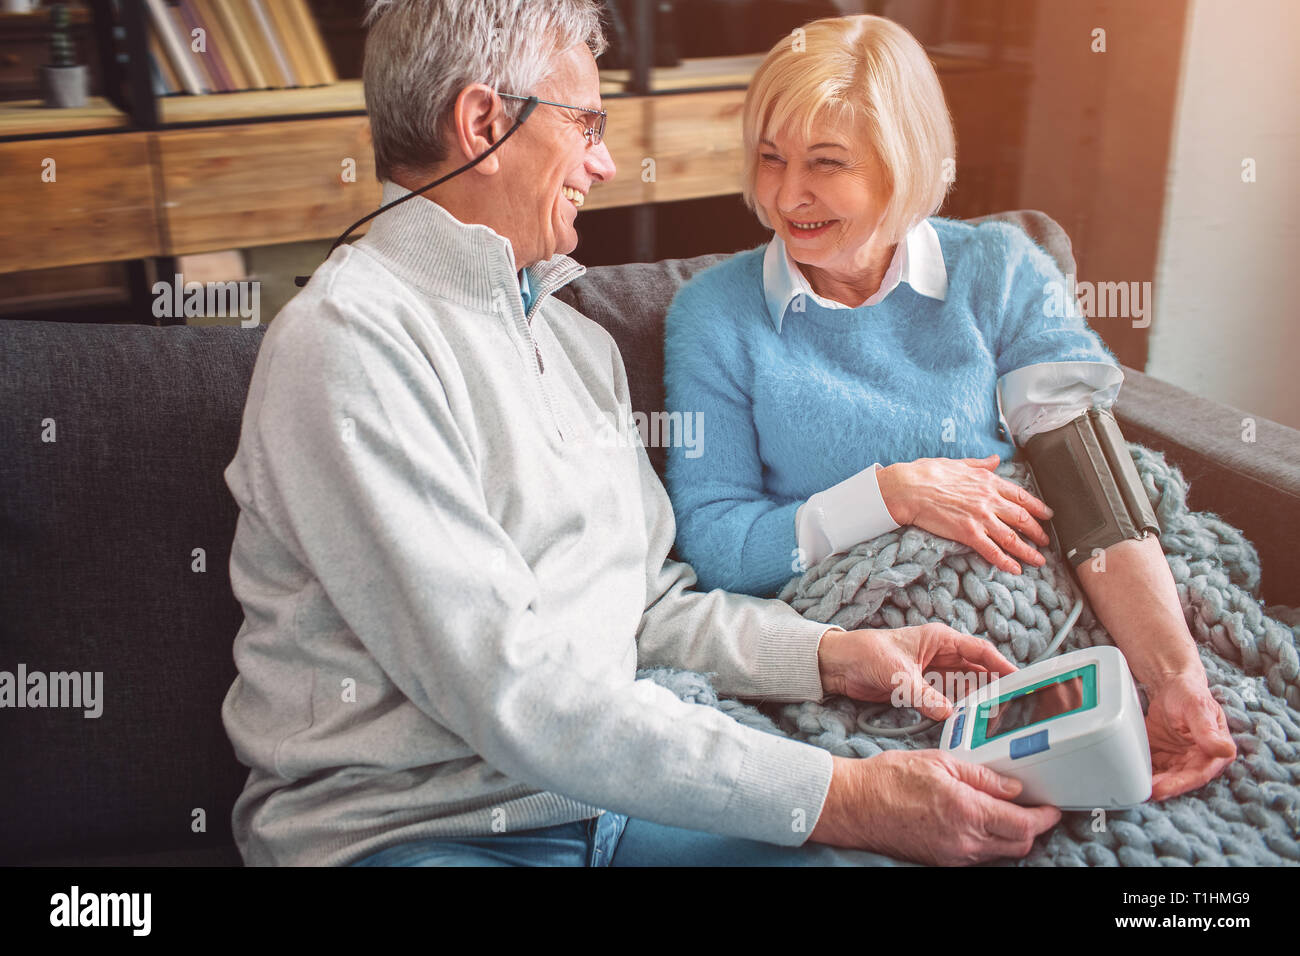 A picutre of happy old couple that like to be together. THe woma - Stock Image